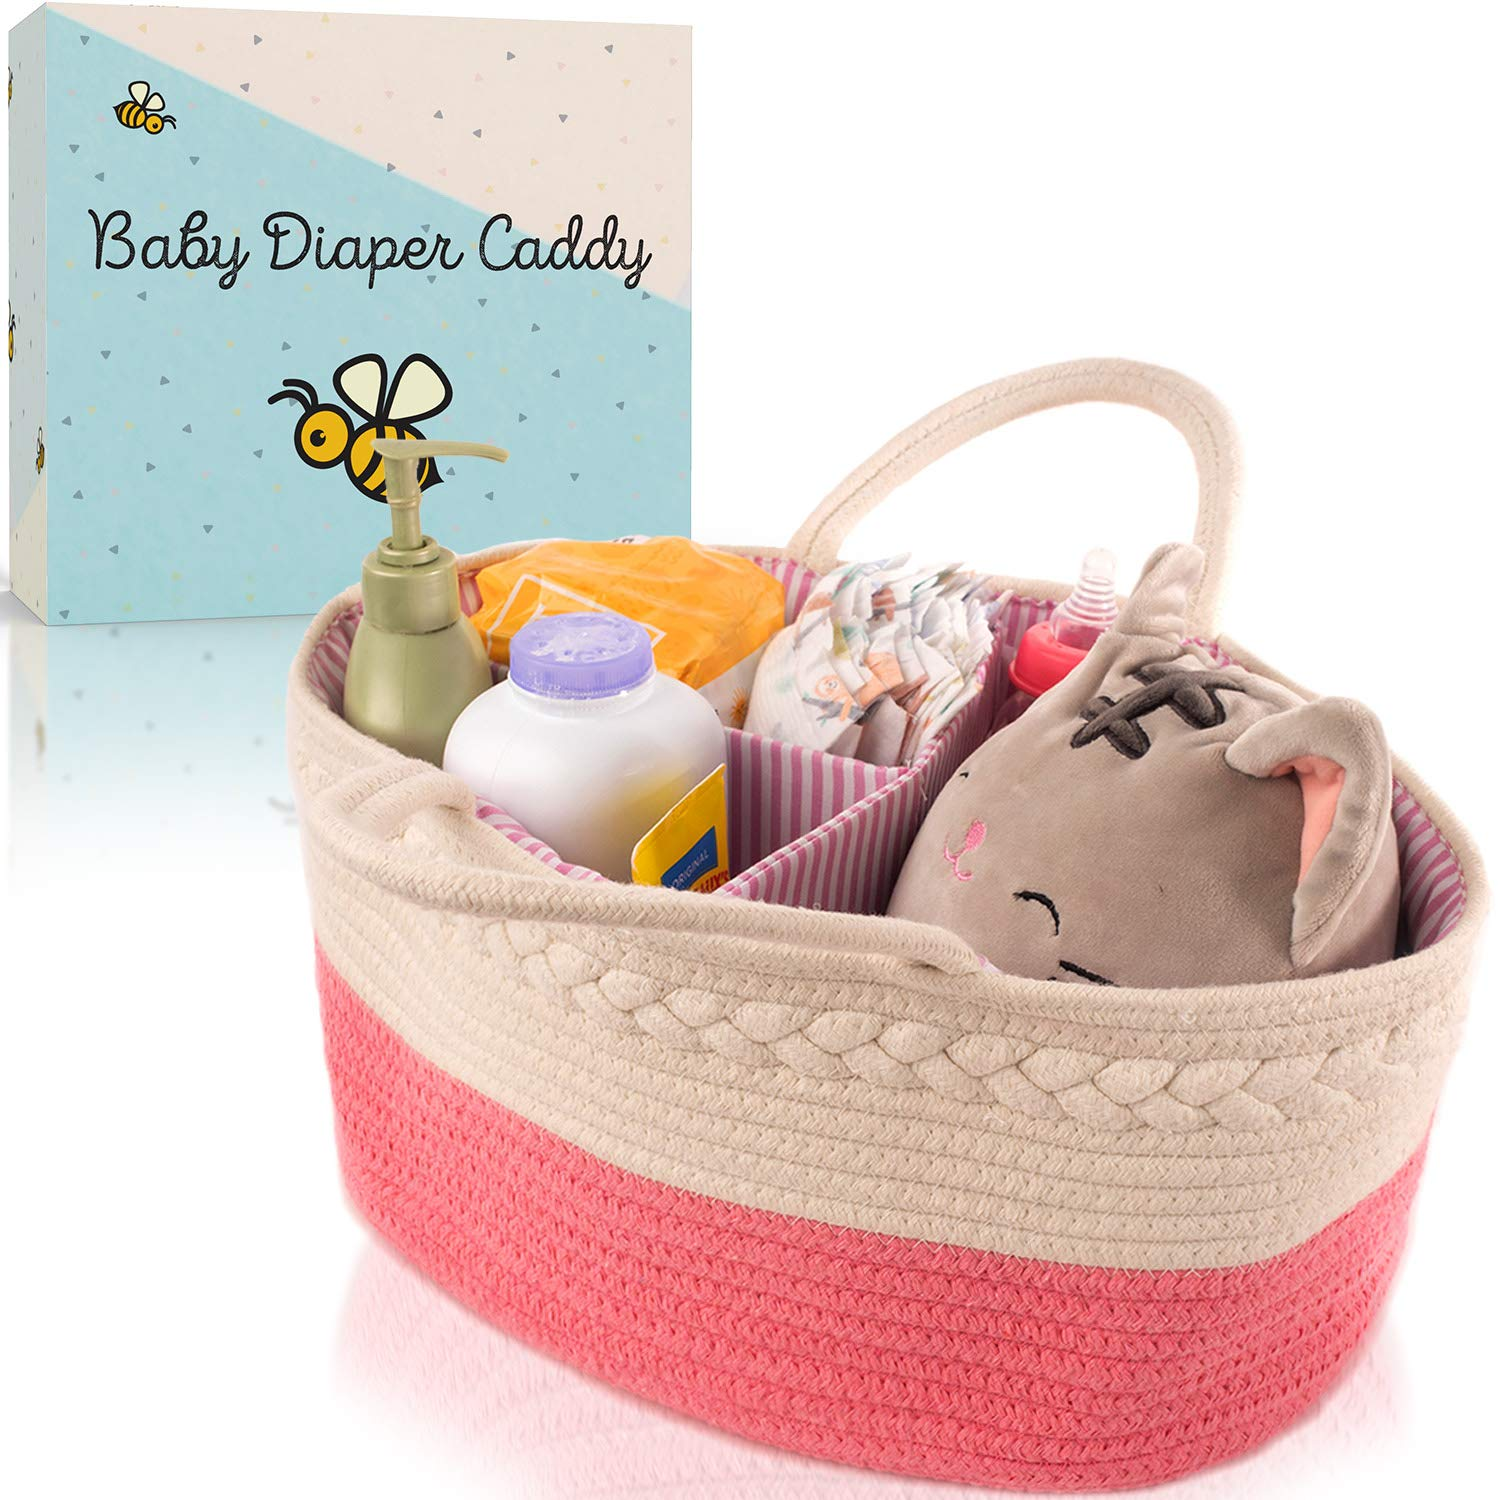 Modern Domus Baby Diaper Caddy Organizer for Changing Table or on The Go! Pink and White Rope Baby Basket with Removable Inserts to for Baby Diapers Storage and More! Original Baby Shower Gifts by Modern Domus